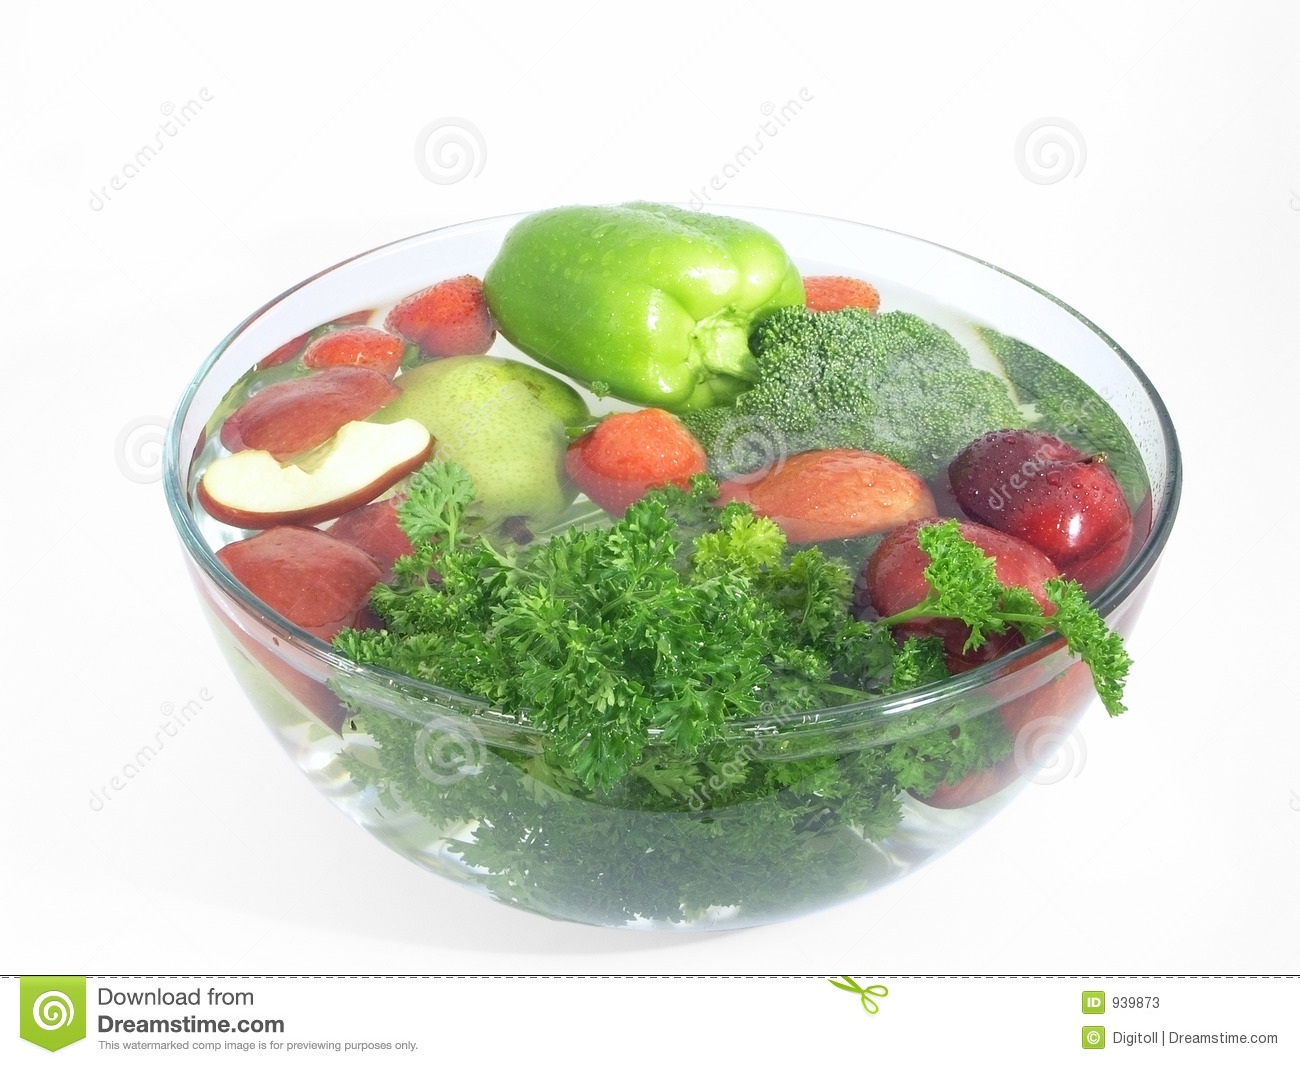 Vegetables And Fruits In Clear Wash Bowlclick The Below Links To View